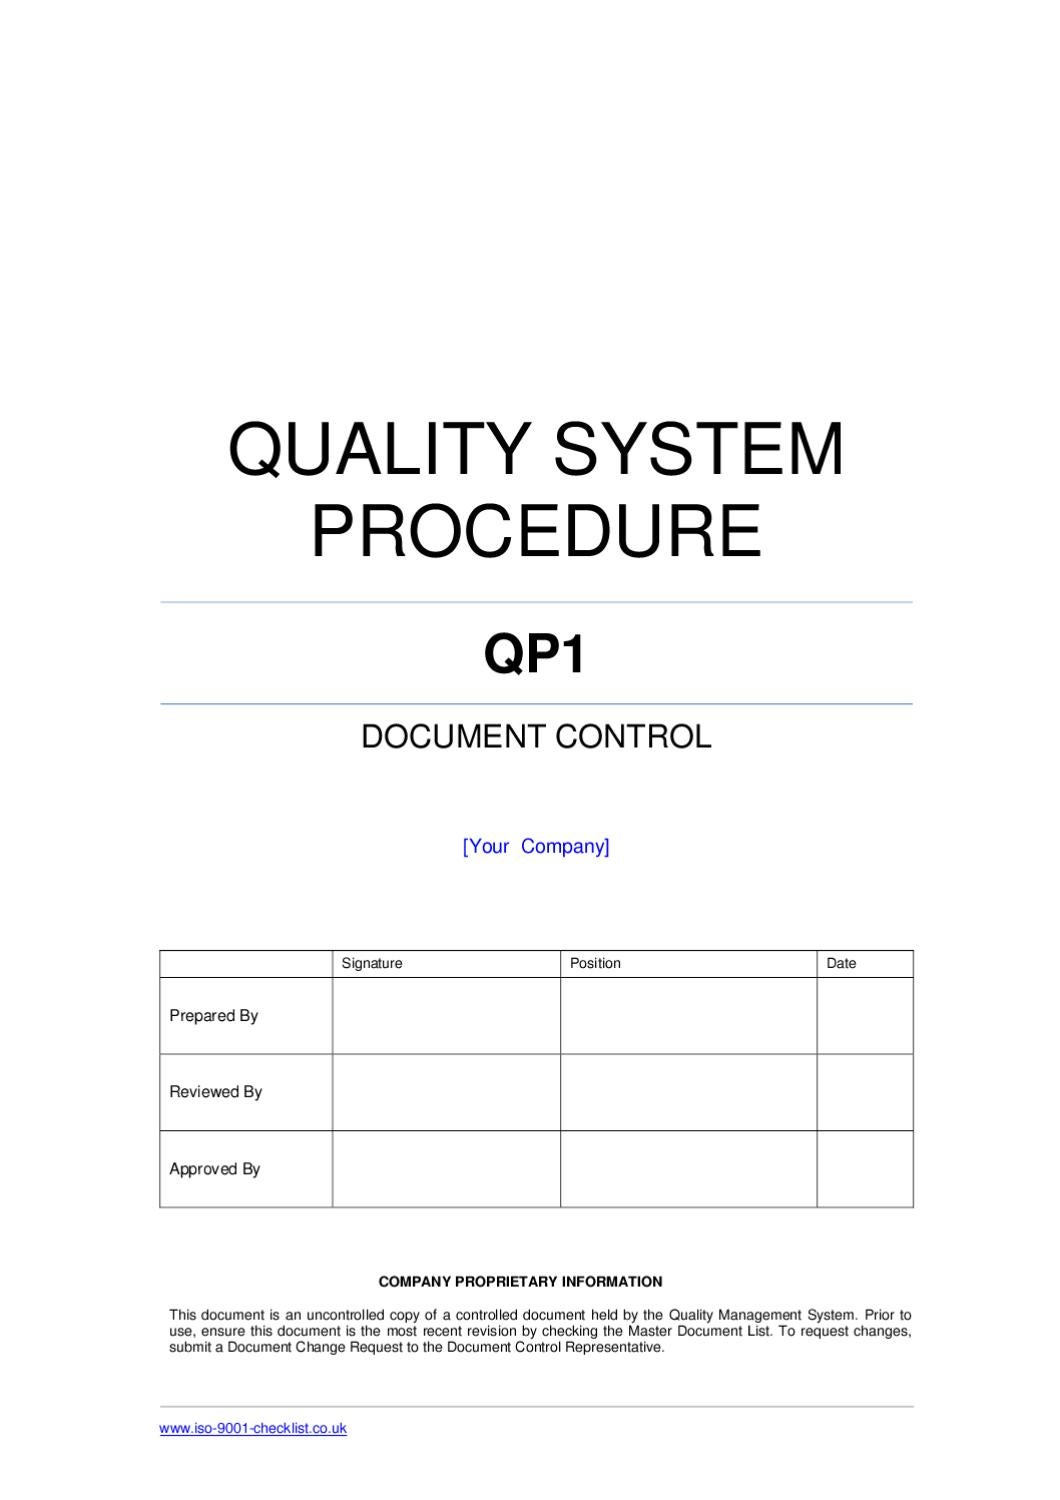 iso 9001 procedures templates - document control procedure example by iso 9001 checklist